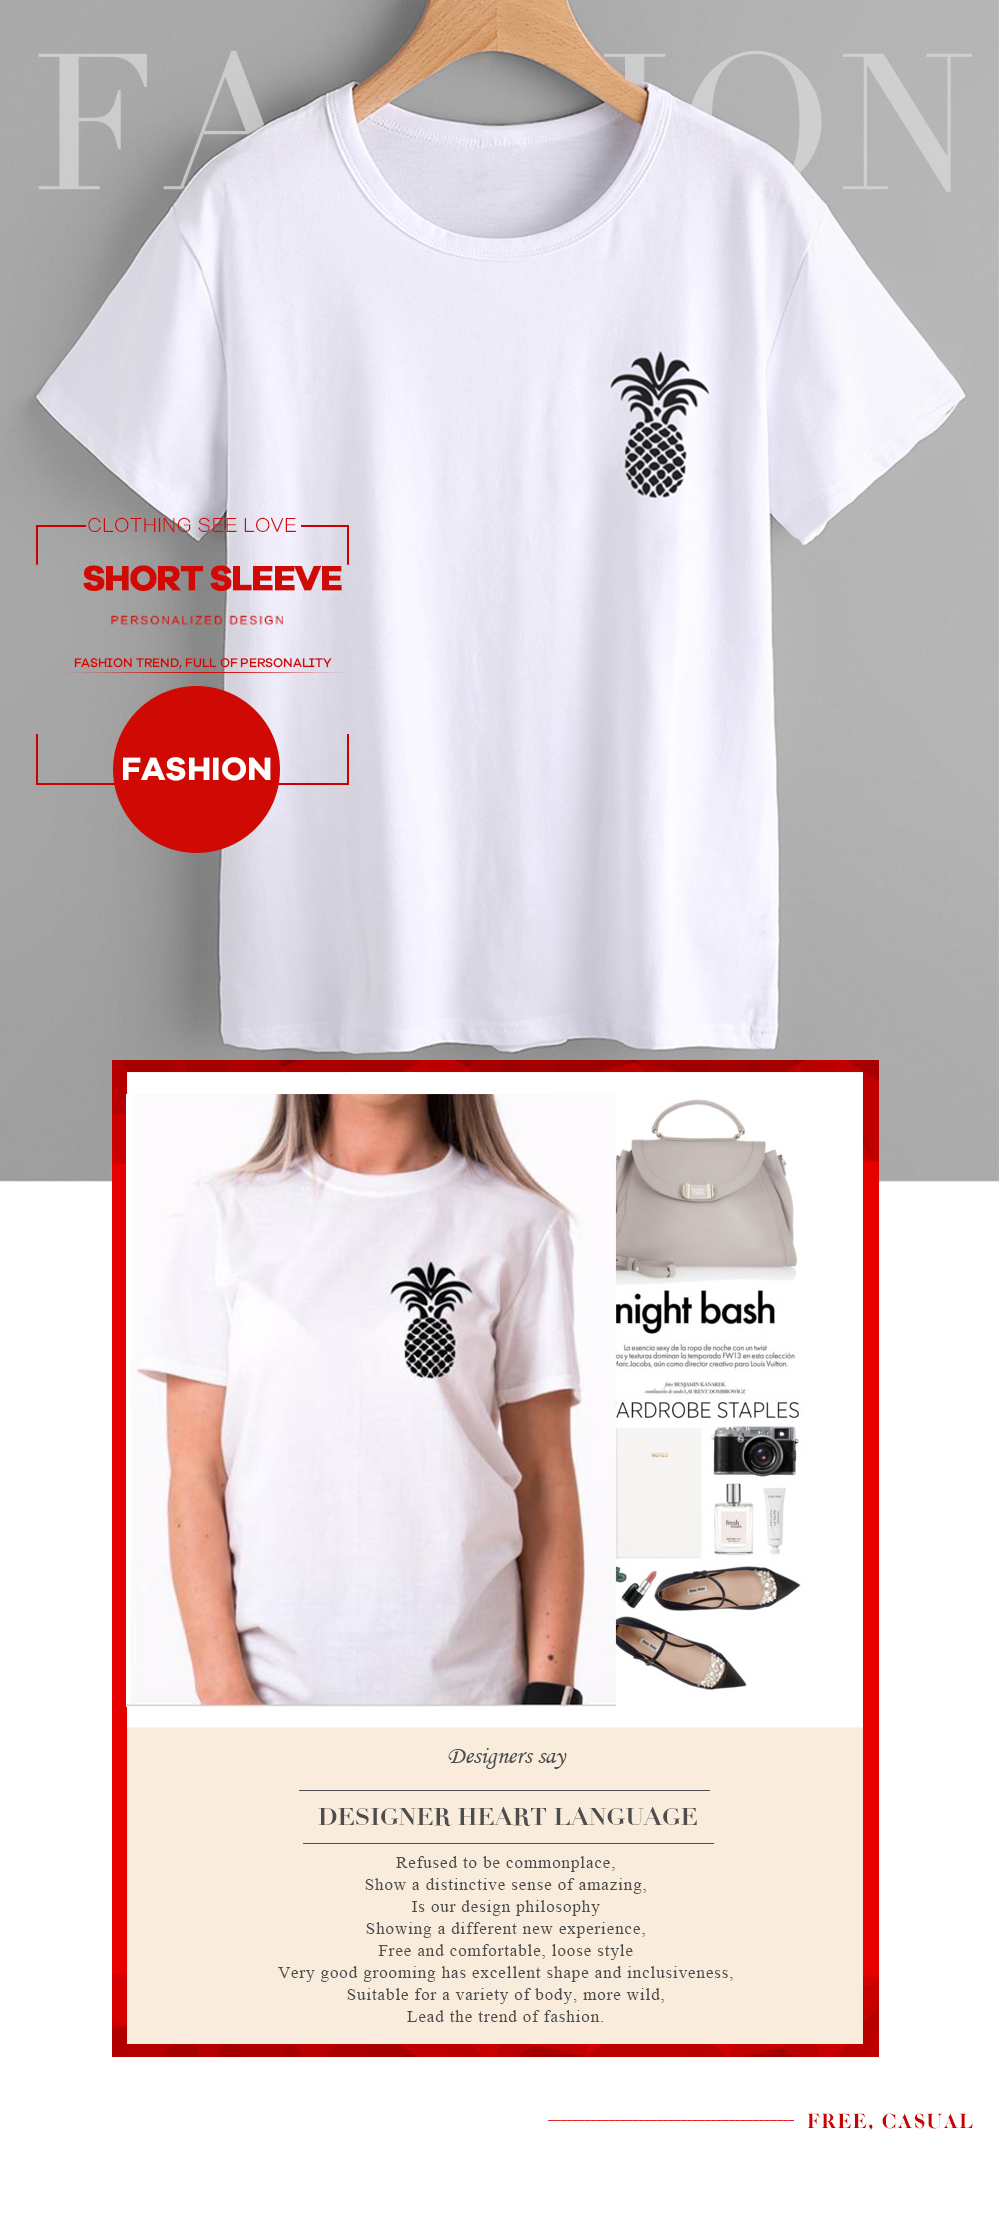 ced21b703e3 24 hour tee shirts are the one that you can never refuse to buy enough and  we can provide you many kinds of that in good quality. For different styles  and ...